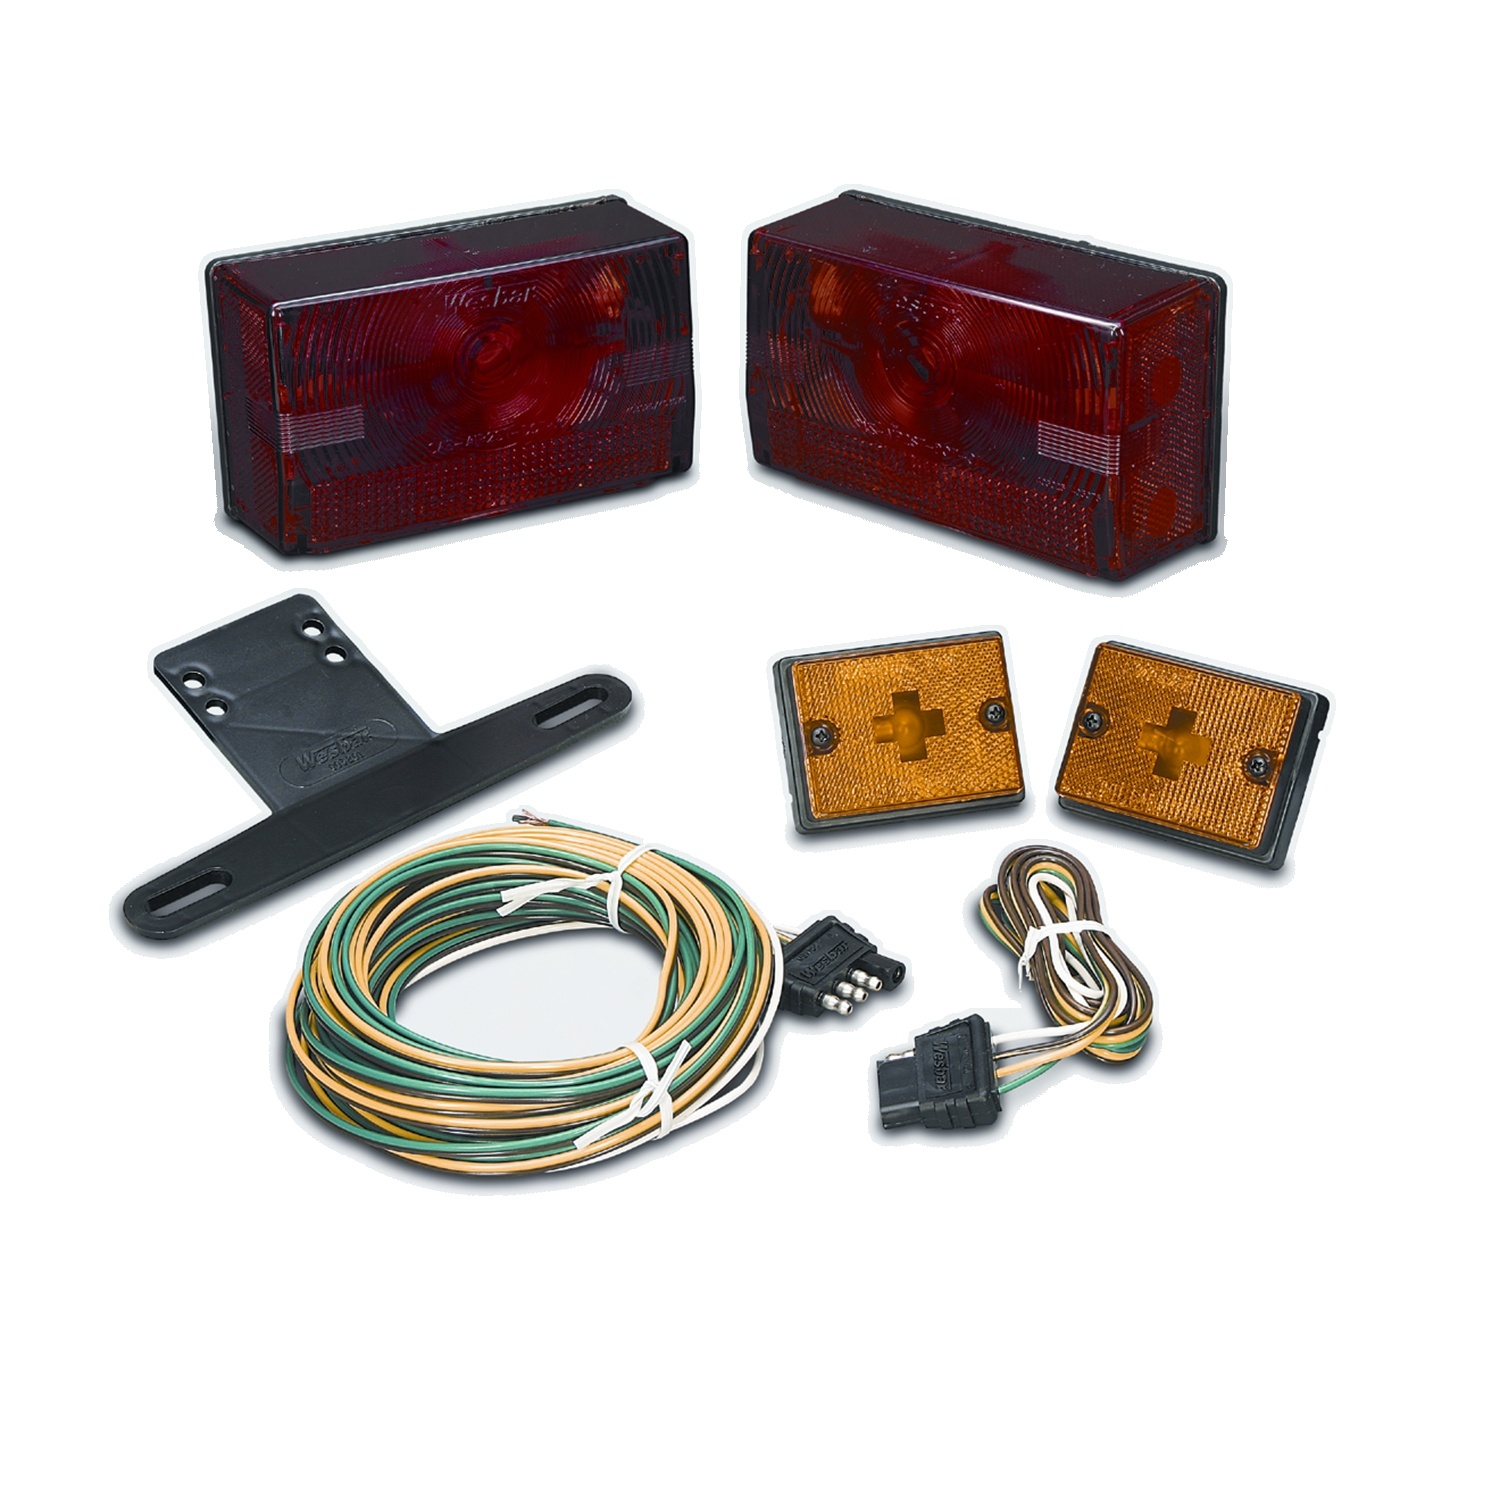 Wesbar 417515 Trailer Light Kit Incl  20 Ft  Wire Harness